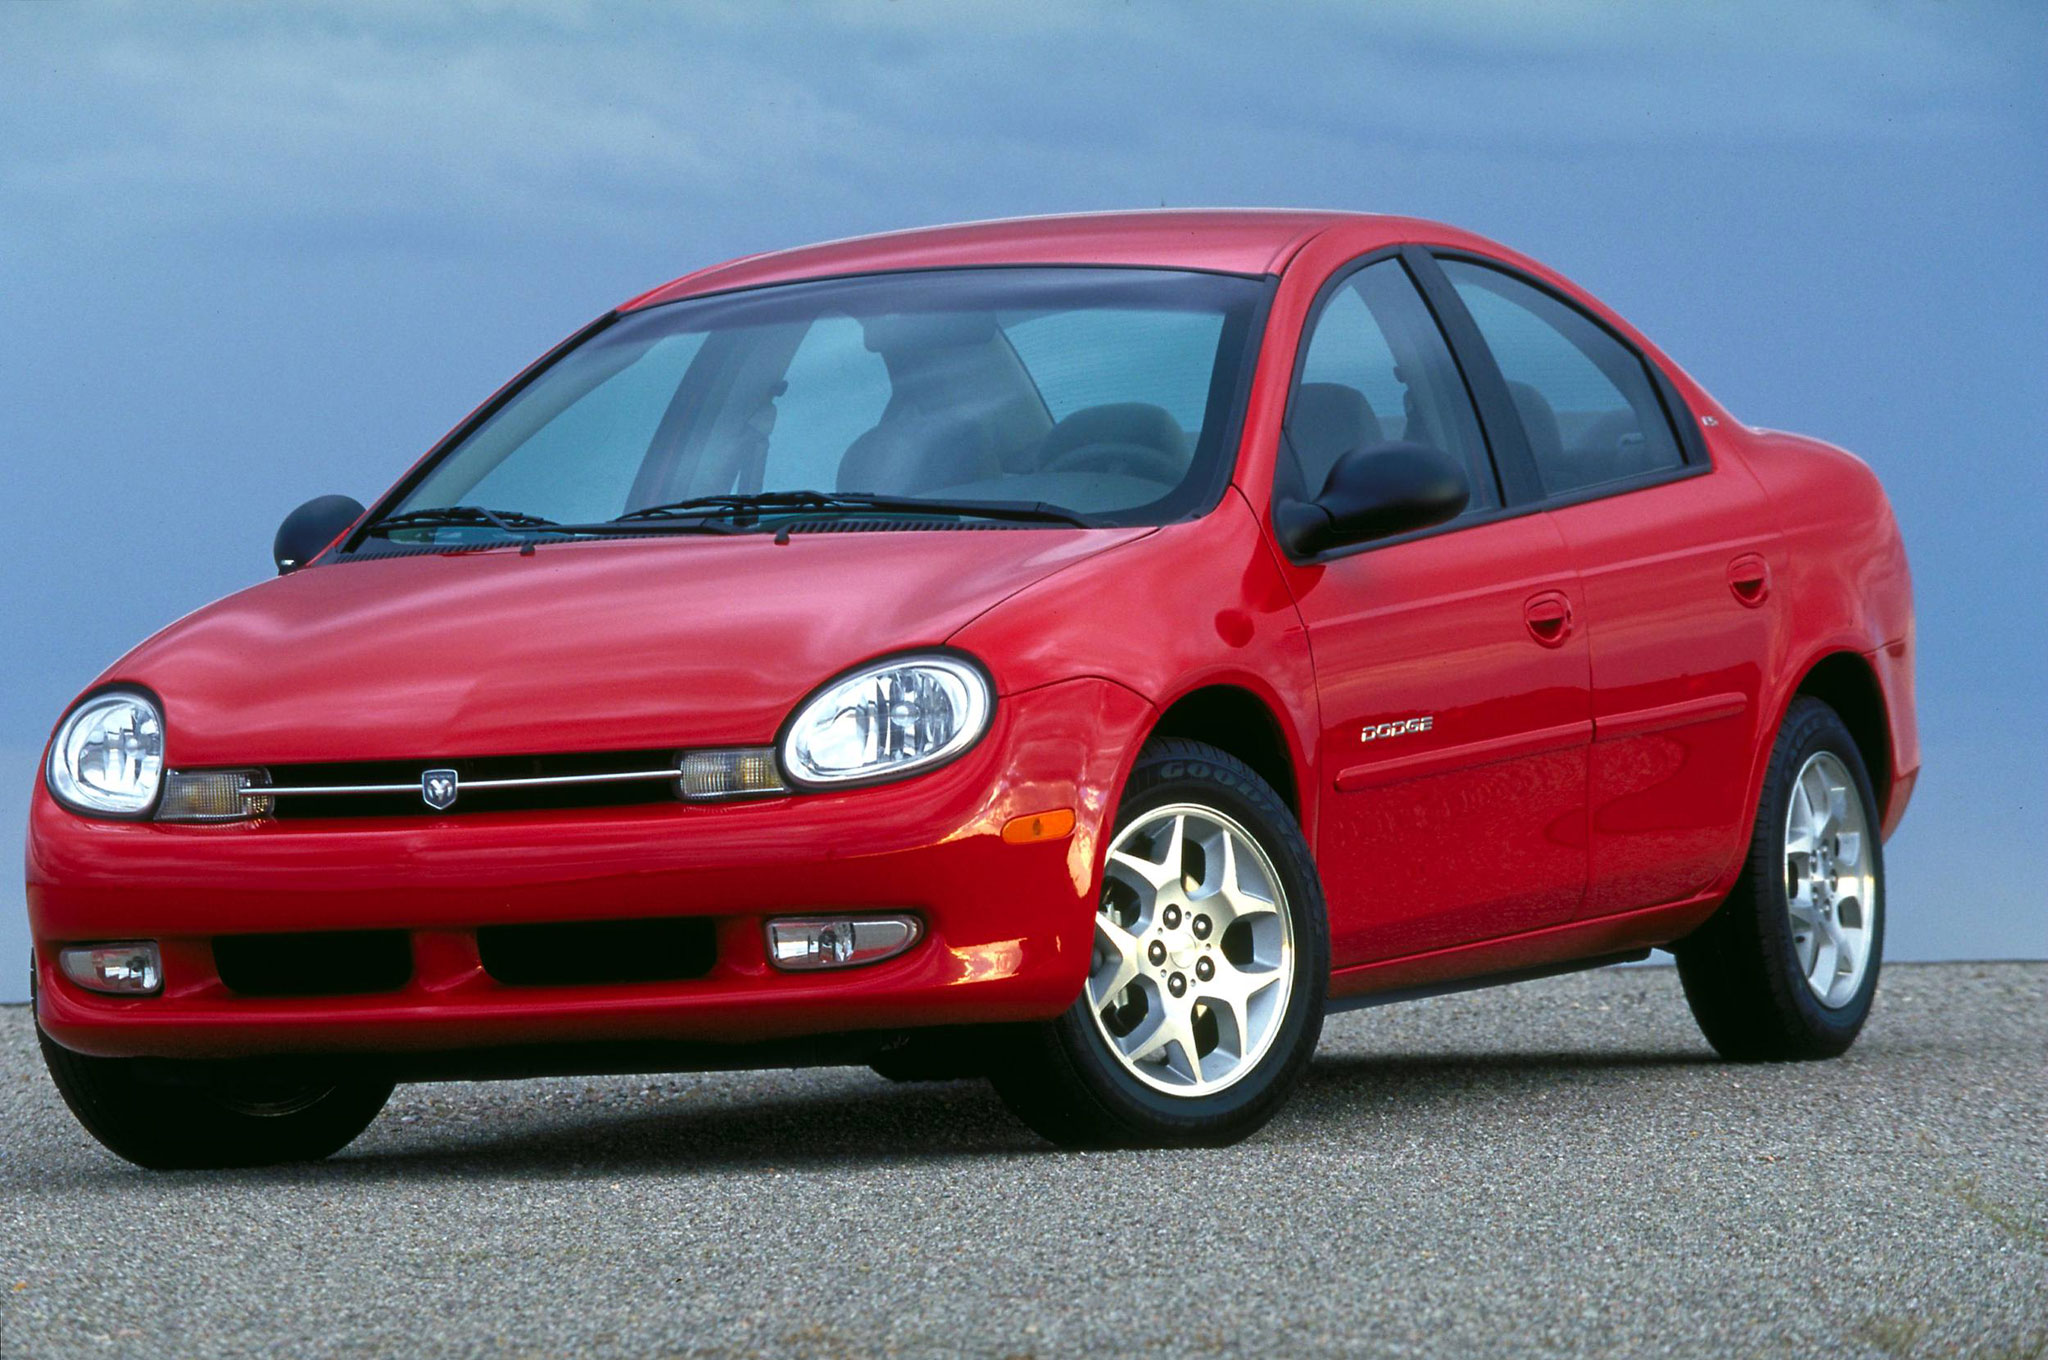 2018 dodge neon usa. beautiful neon 1998 dodge neon front three quarter view in 2018 dodge neon usa 4